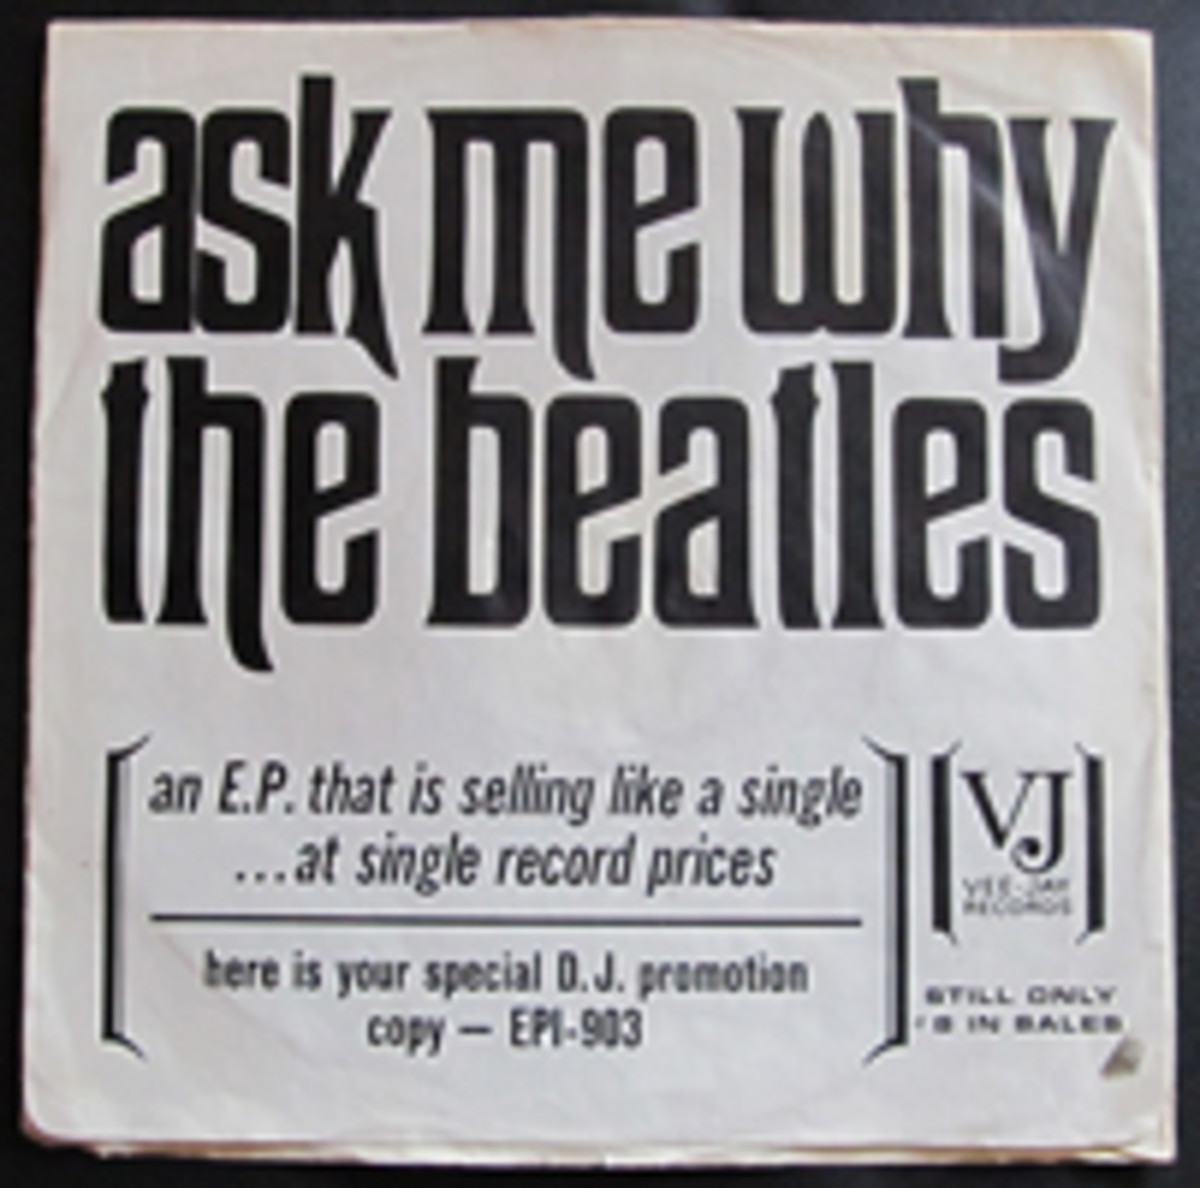 The Beatles Ask Me Why Promo Sleeve